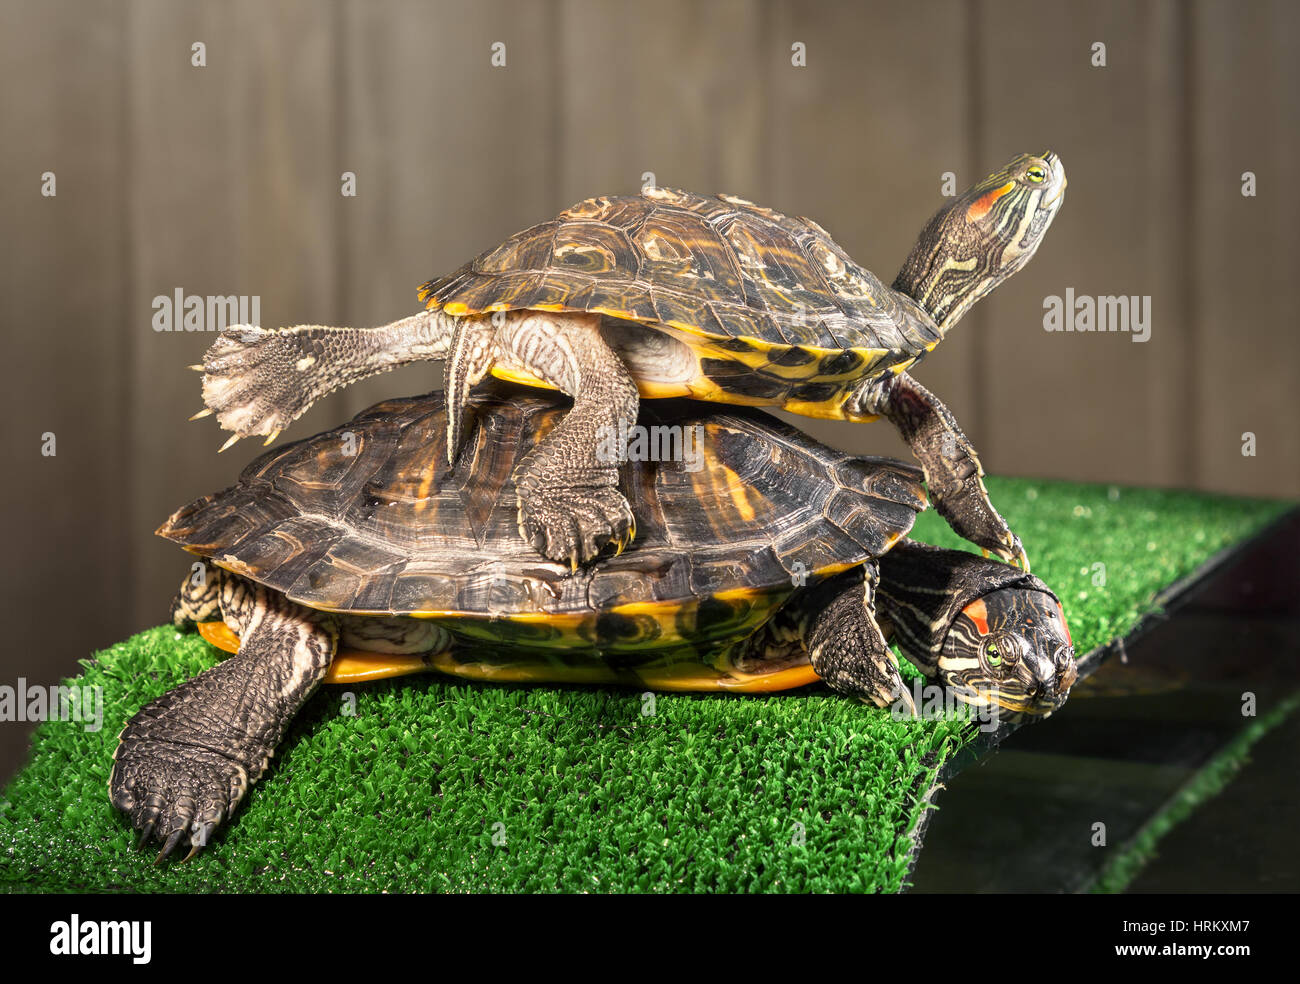 Two red-eared sliders on the bridge with artificial grass are basking under a lamp. Stock Photo